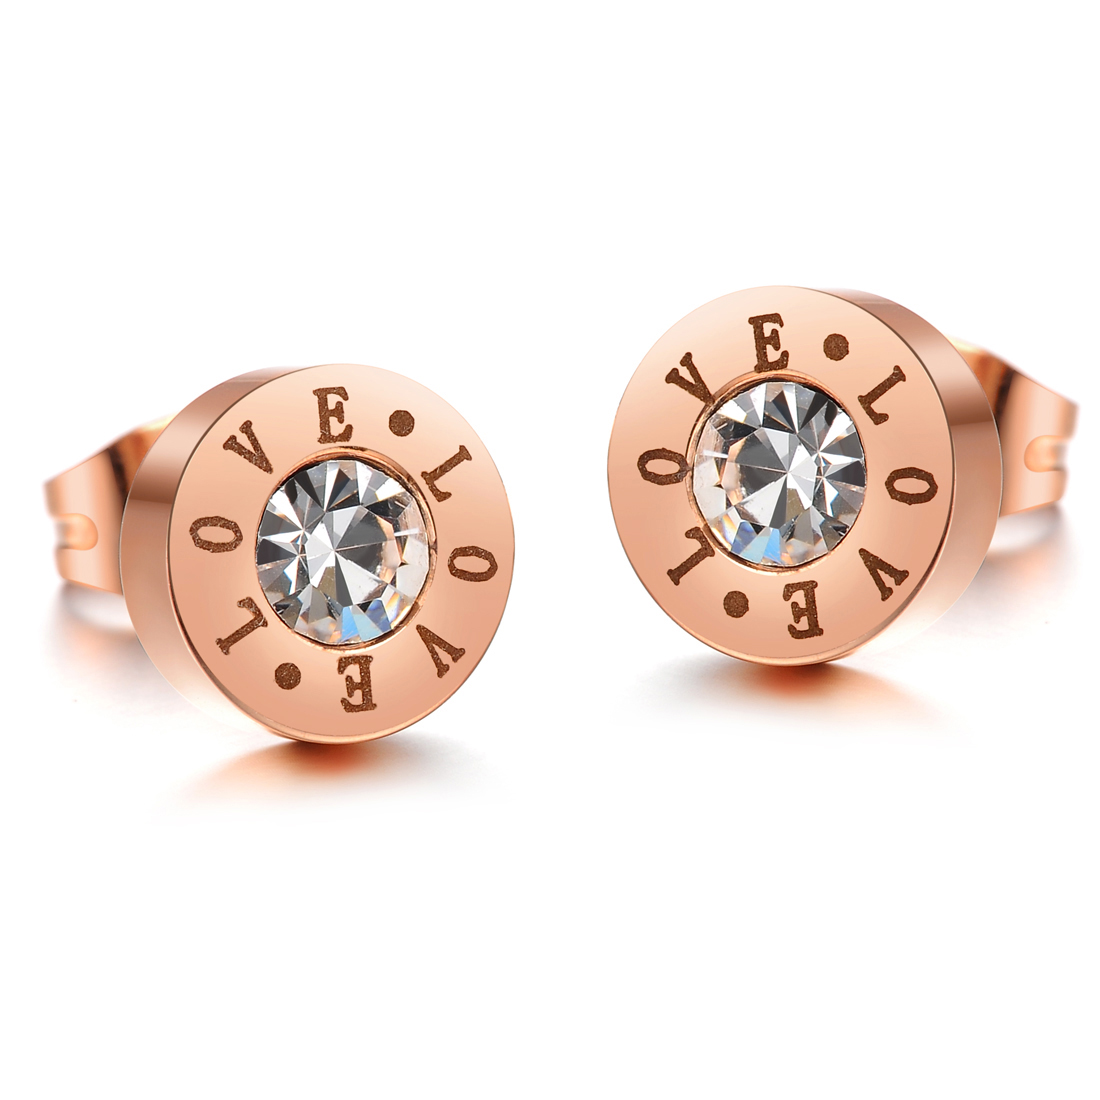 color inlaid with aaa gold gift for in rose beauty jewelry trendy plated perfect zircon stud from steel stainless item stone mother earrings women cz